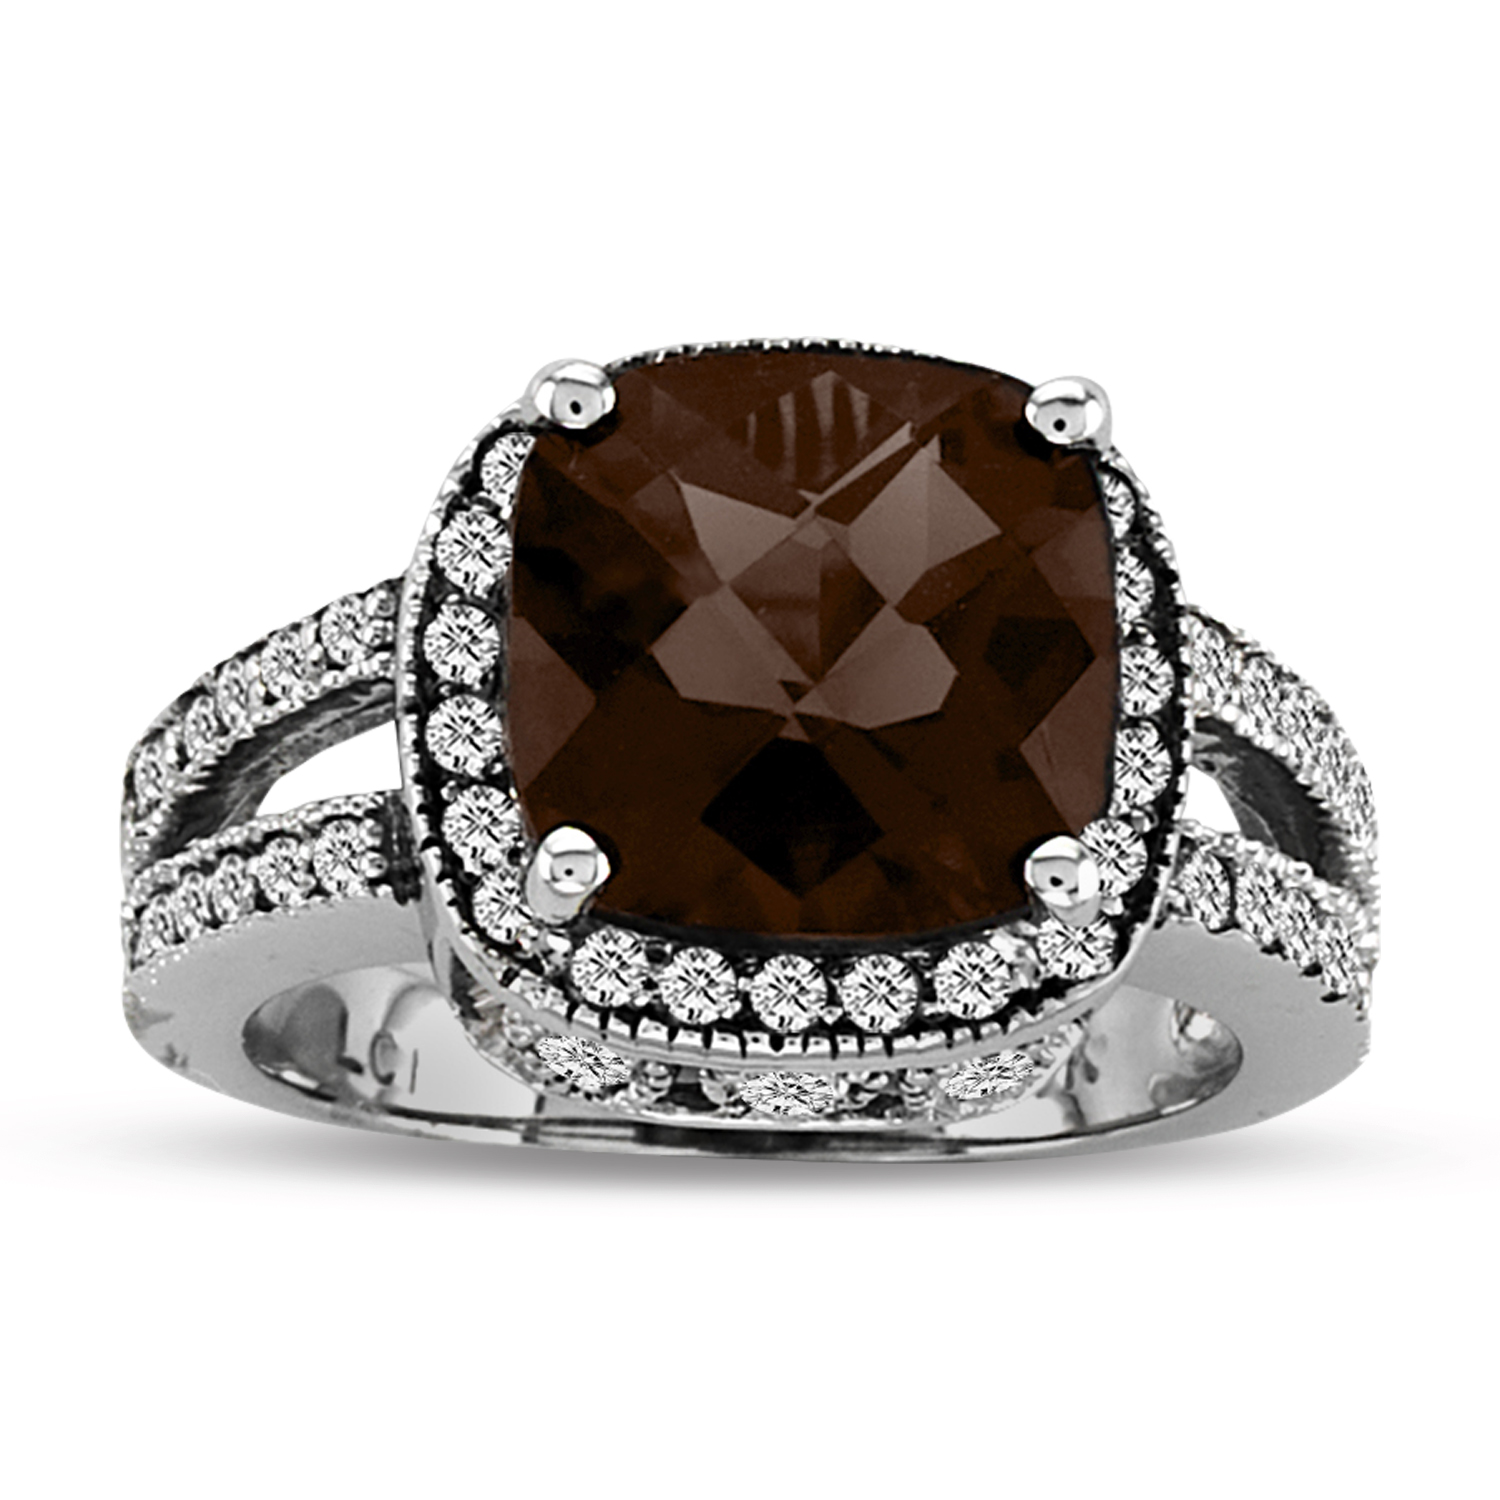 View 14k Gold Split Shank Ring with 0.50ct tw of Round Diamonds and 9mm Cushion Checkerboard Cut Smokey Quarts Center Stone